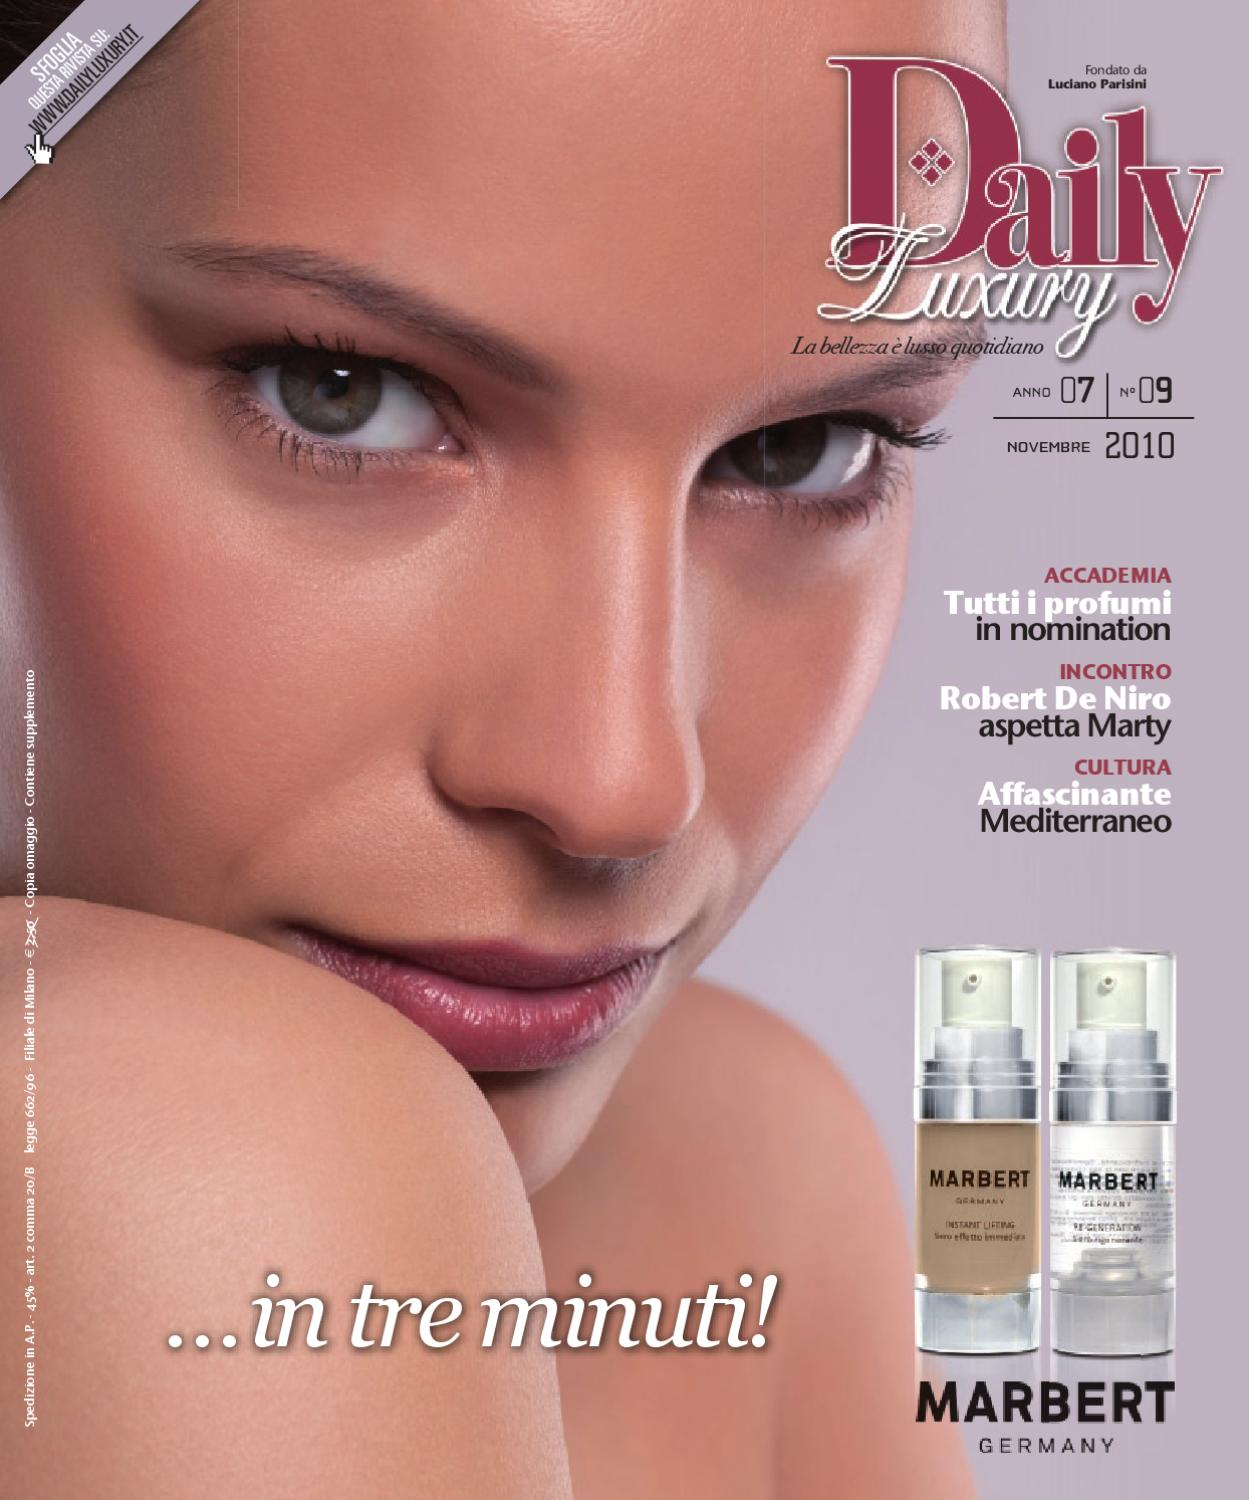 DAILY LUXURY • n.9 novembre 2010 by DAILY LUXURY - issuu 84ff0a9c8107